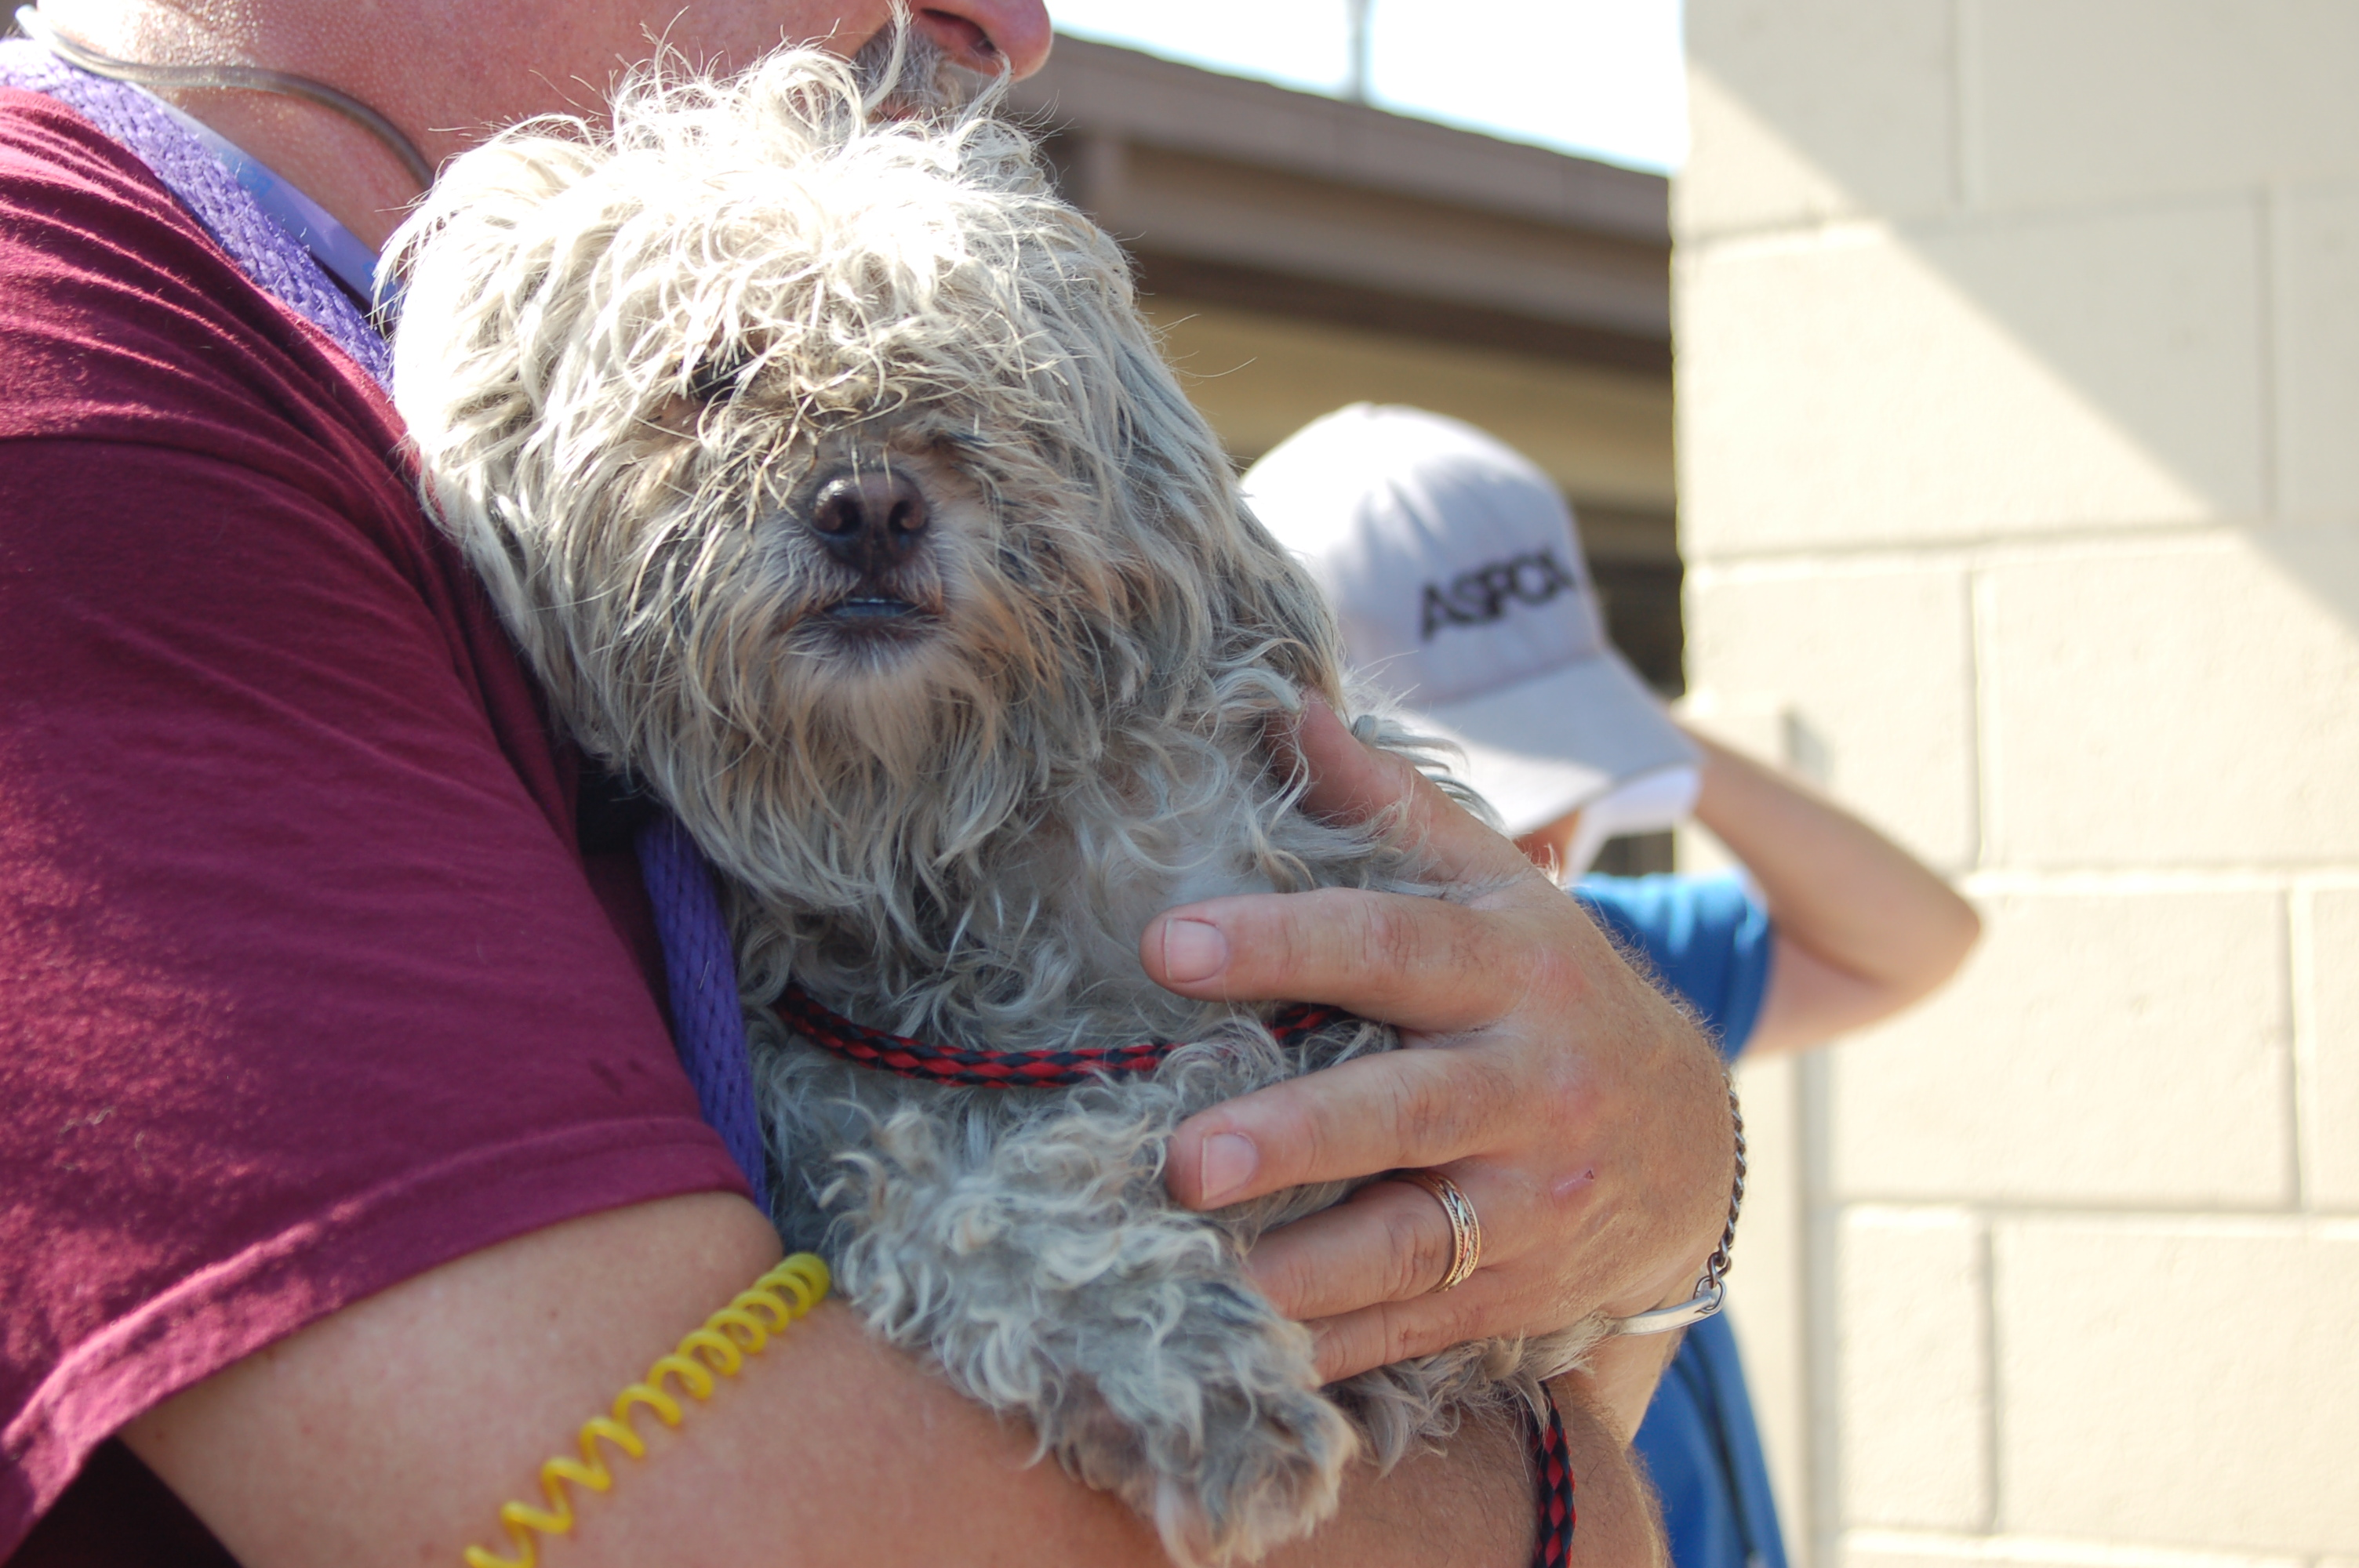 Person holding a small dog at an animal rescue event.